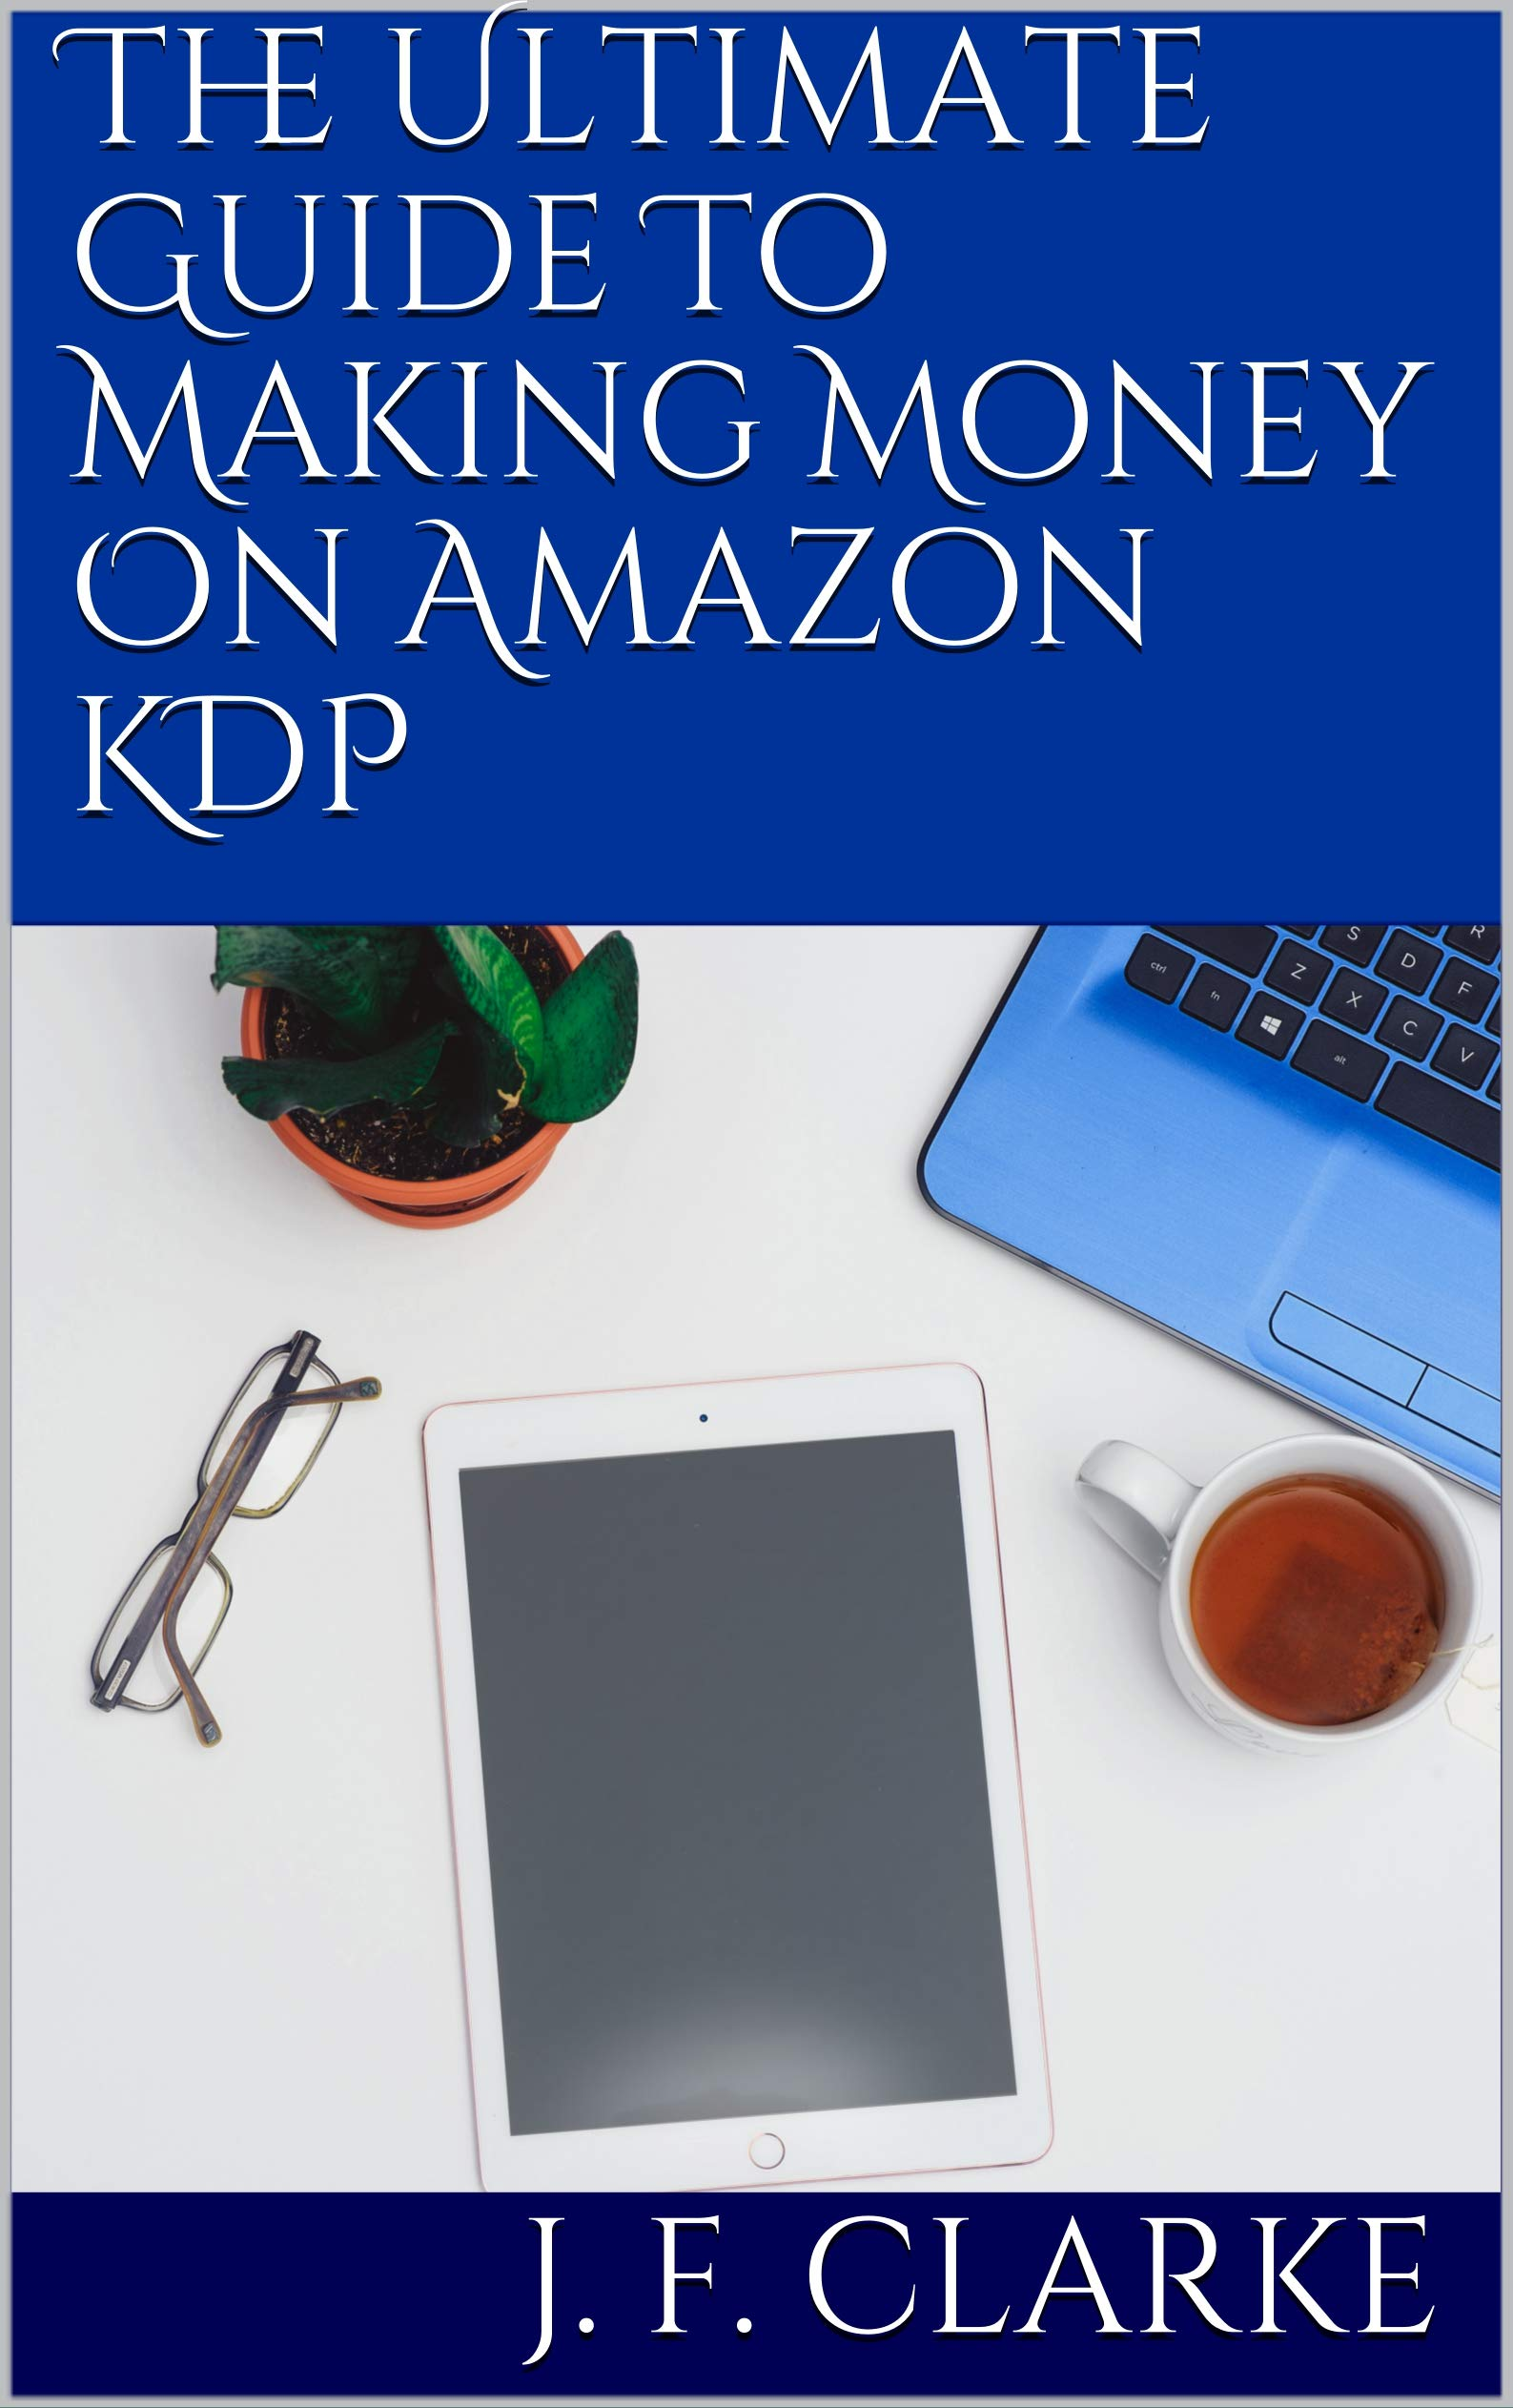 The Ultimate Guide To Making Money On Amazon KDP: A Step-By-Step Manual For Selling Low Content Books On Amazon KDP, With Proven Methods And Full Examples!